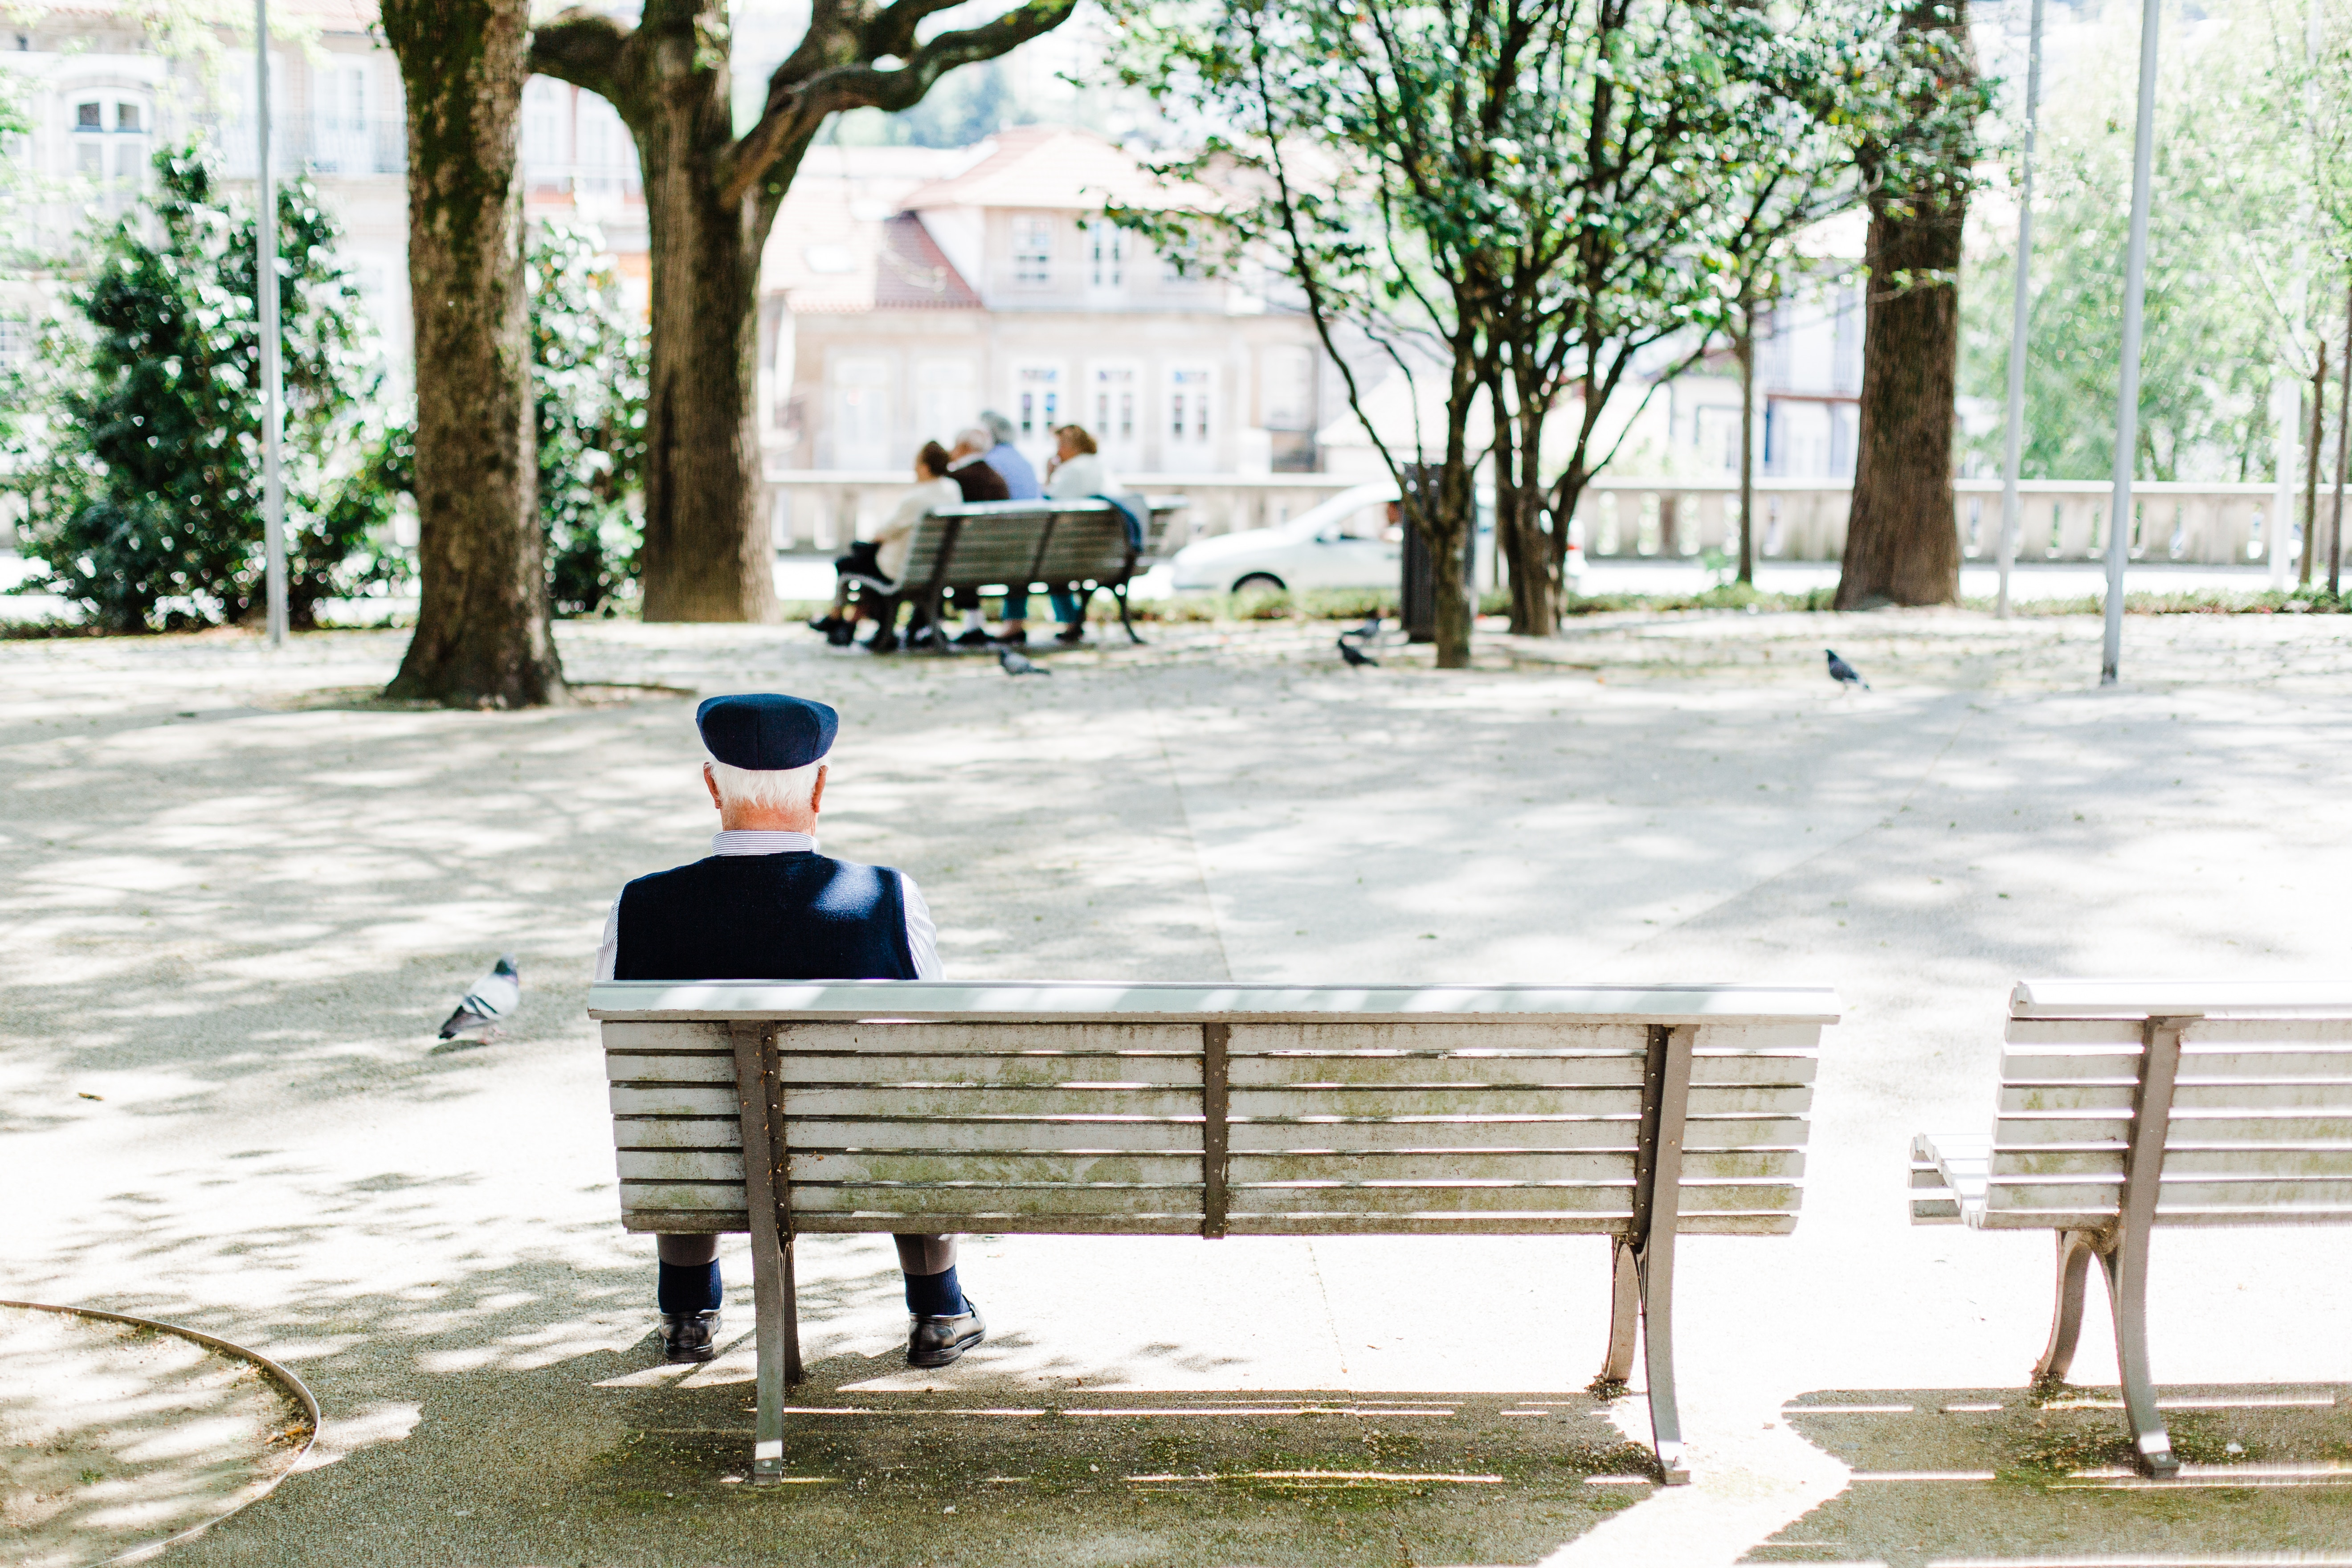 How better transport can help tackle loneliness